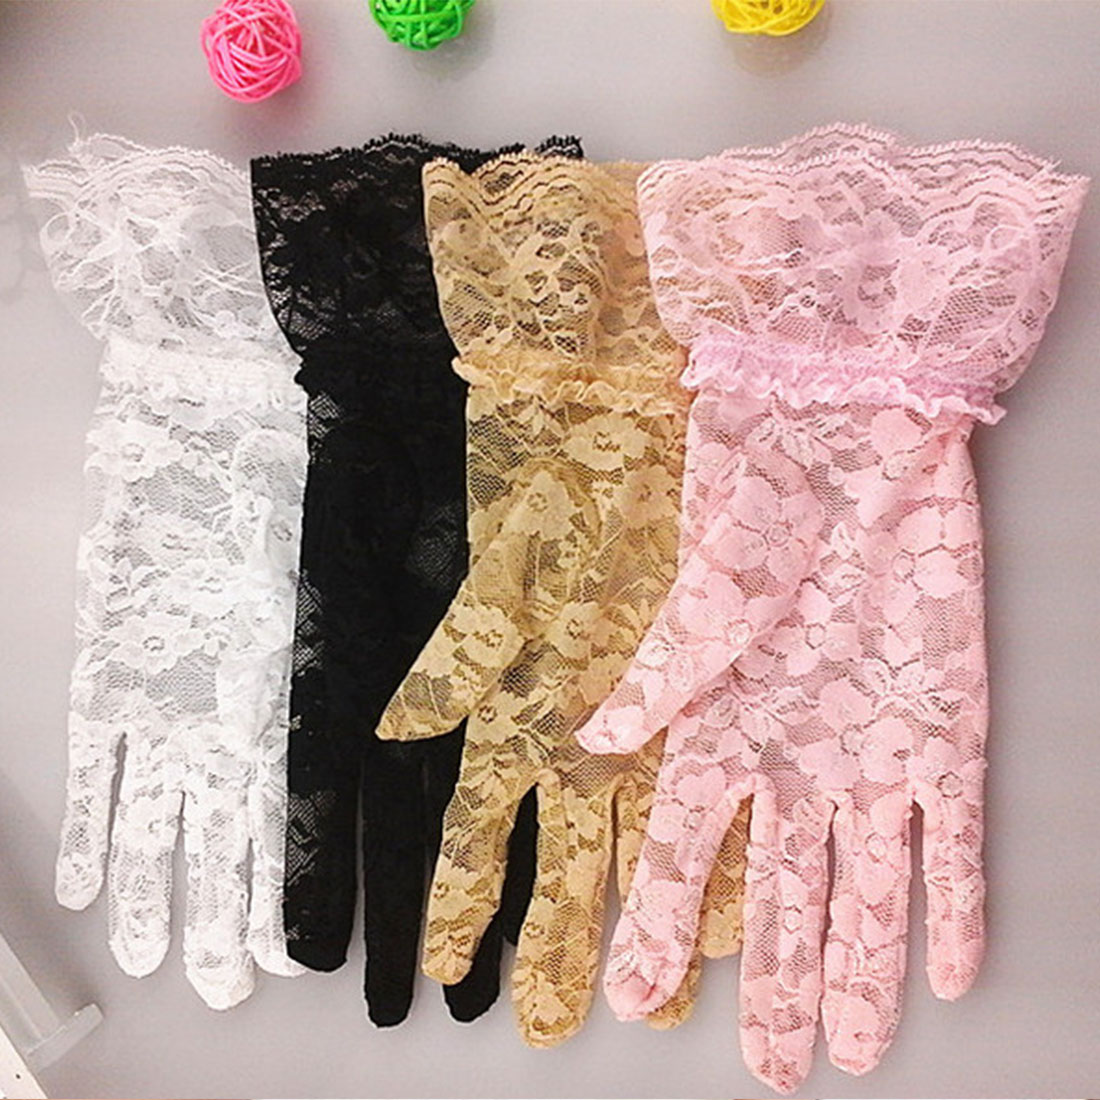 New Elegant Style Sun Protection Accessories Lace Hollow-Out Gloves Delicate Lace Jacquard Pattern Lace Gloves